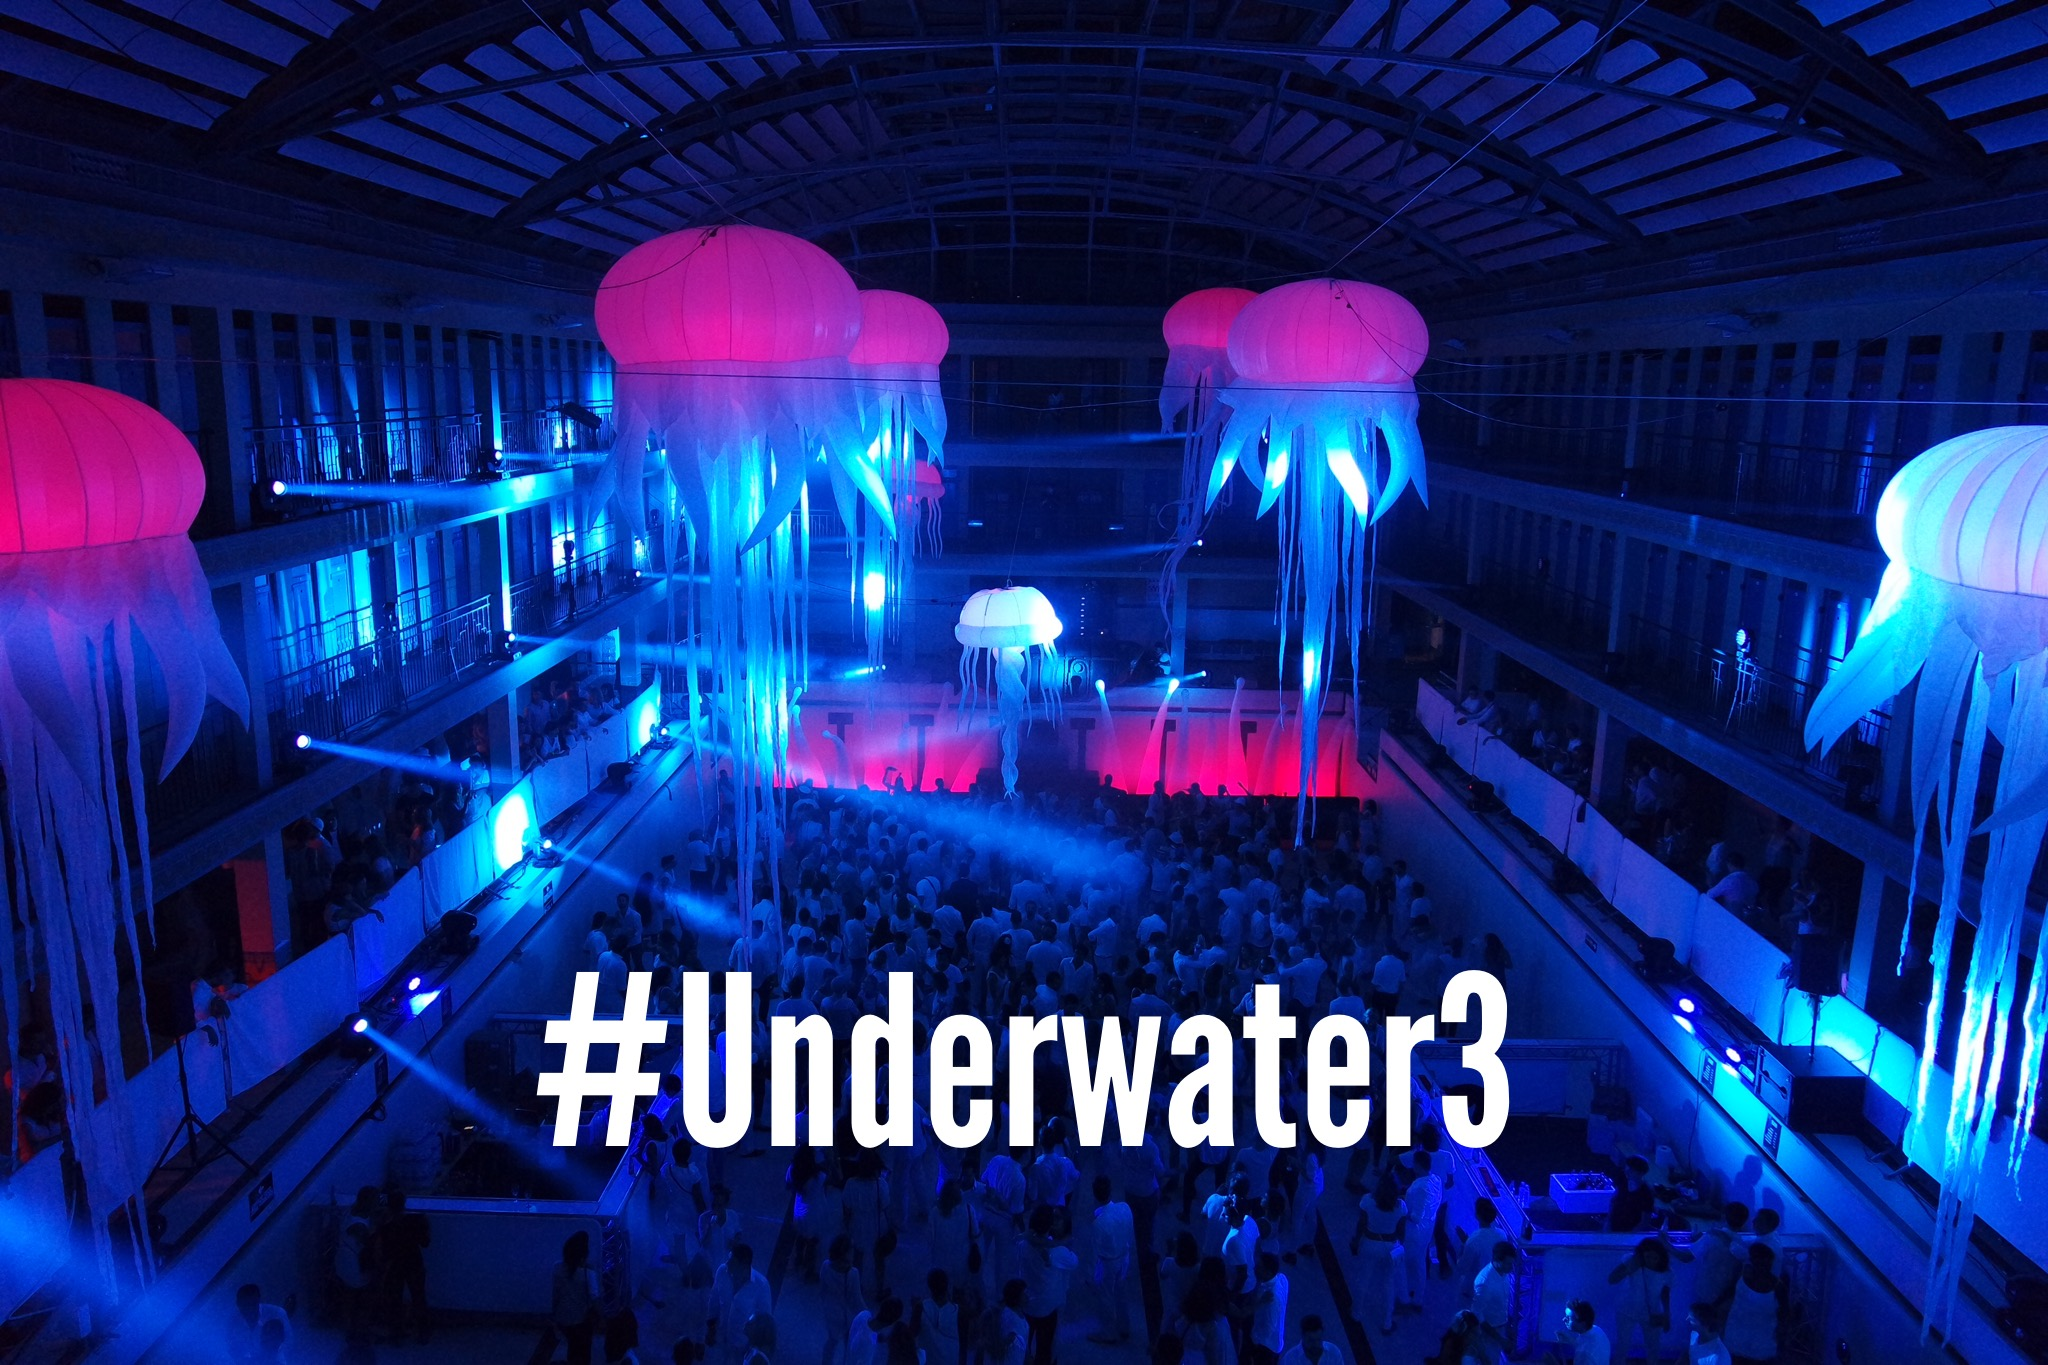 Underwater 3 the light bath par Agence Wato we are the oracle piscine pailleron 28 et 29 août 2015 swimming pool party night photo by united states of paris blog